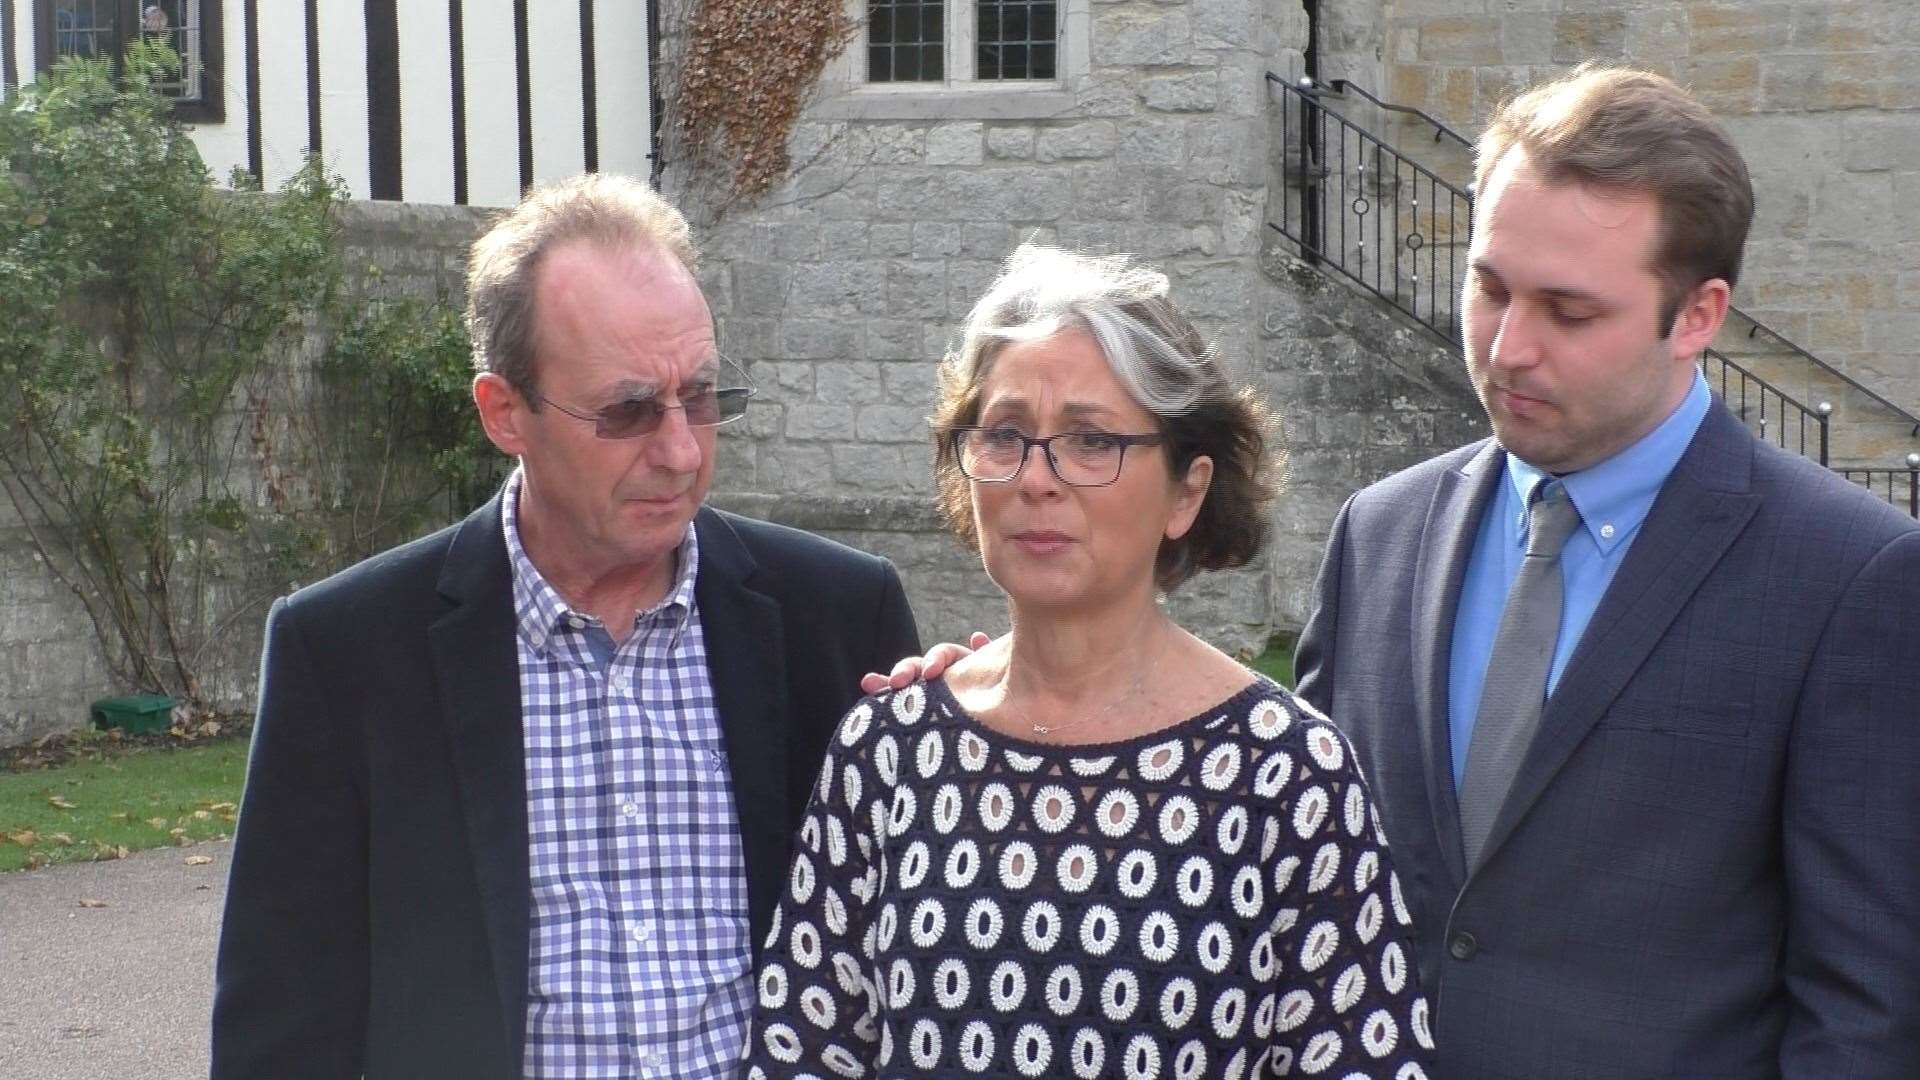 Tim Mason's parents, Gavin and Fiona, outside court (5121108)